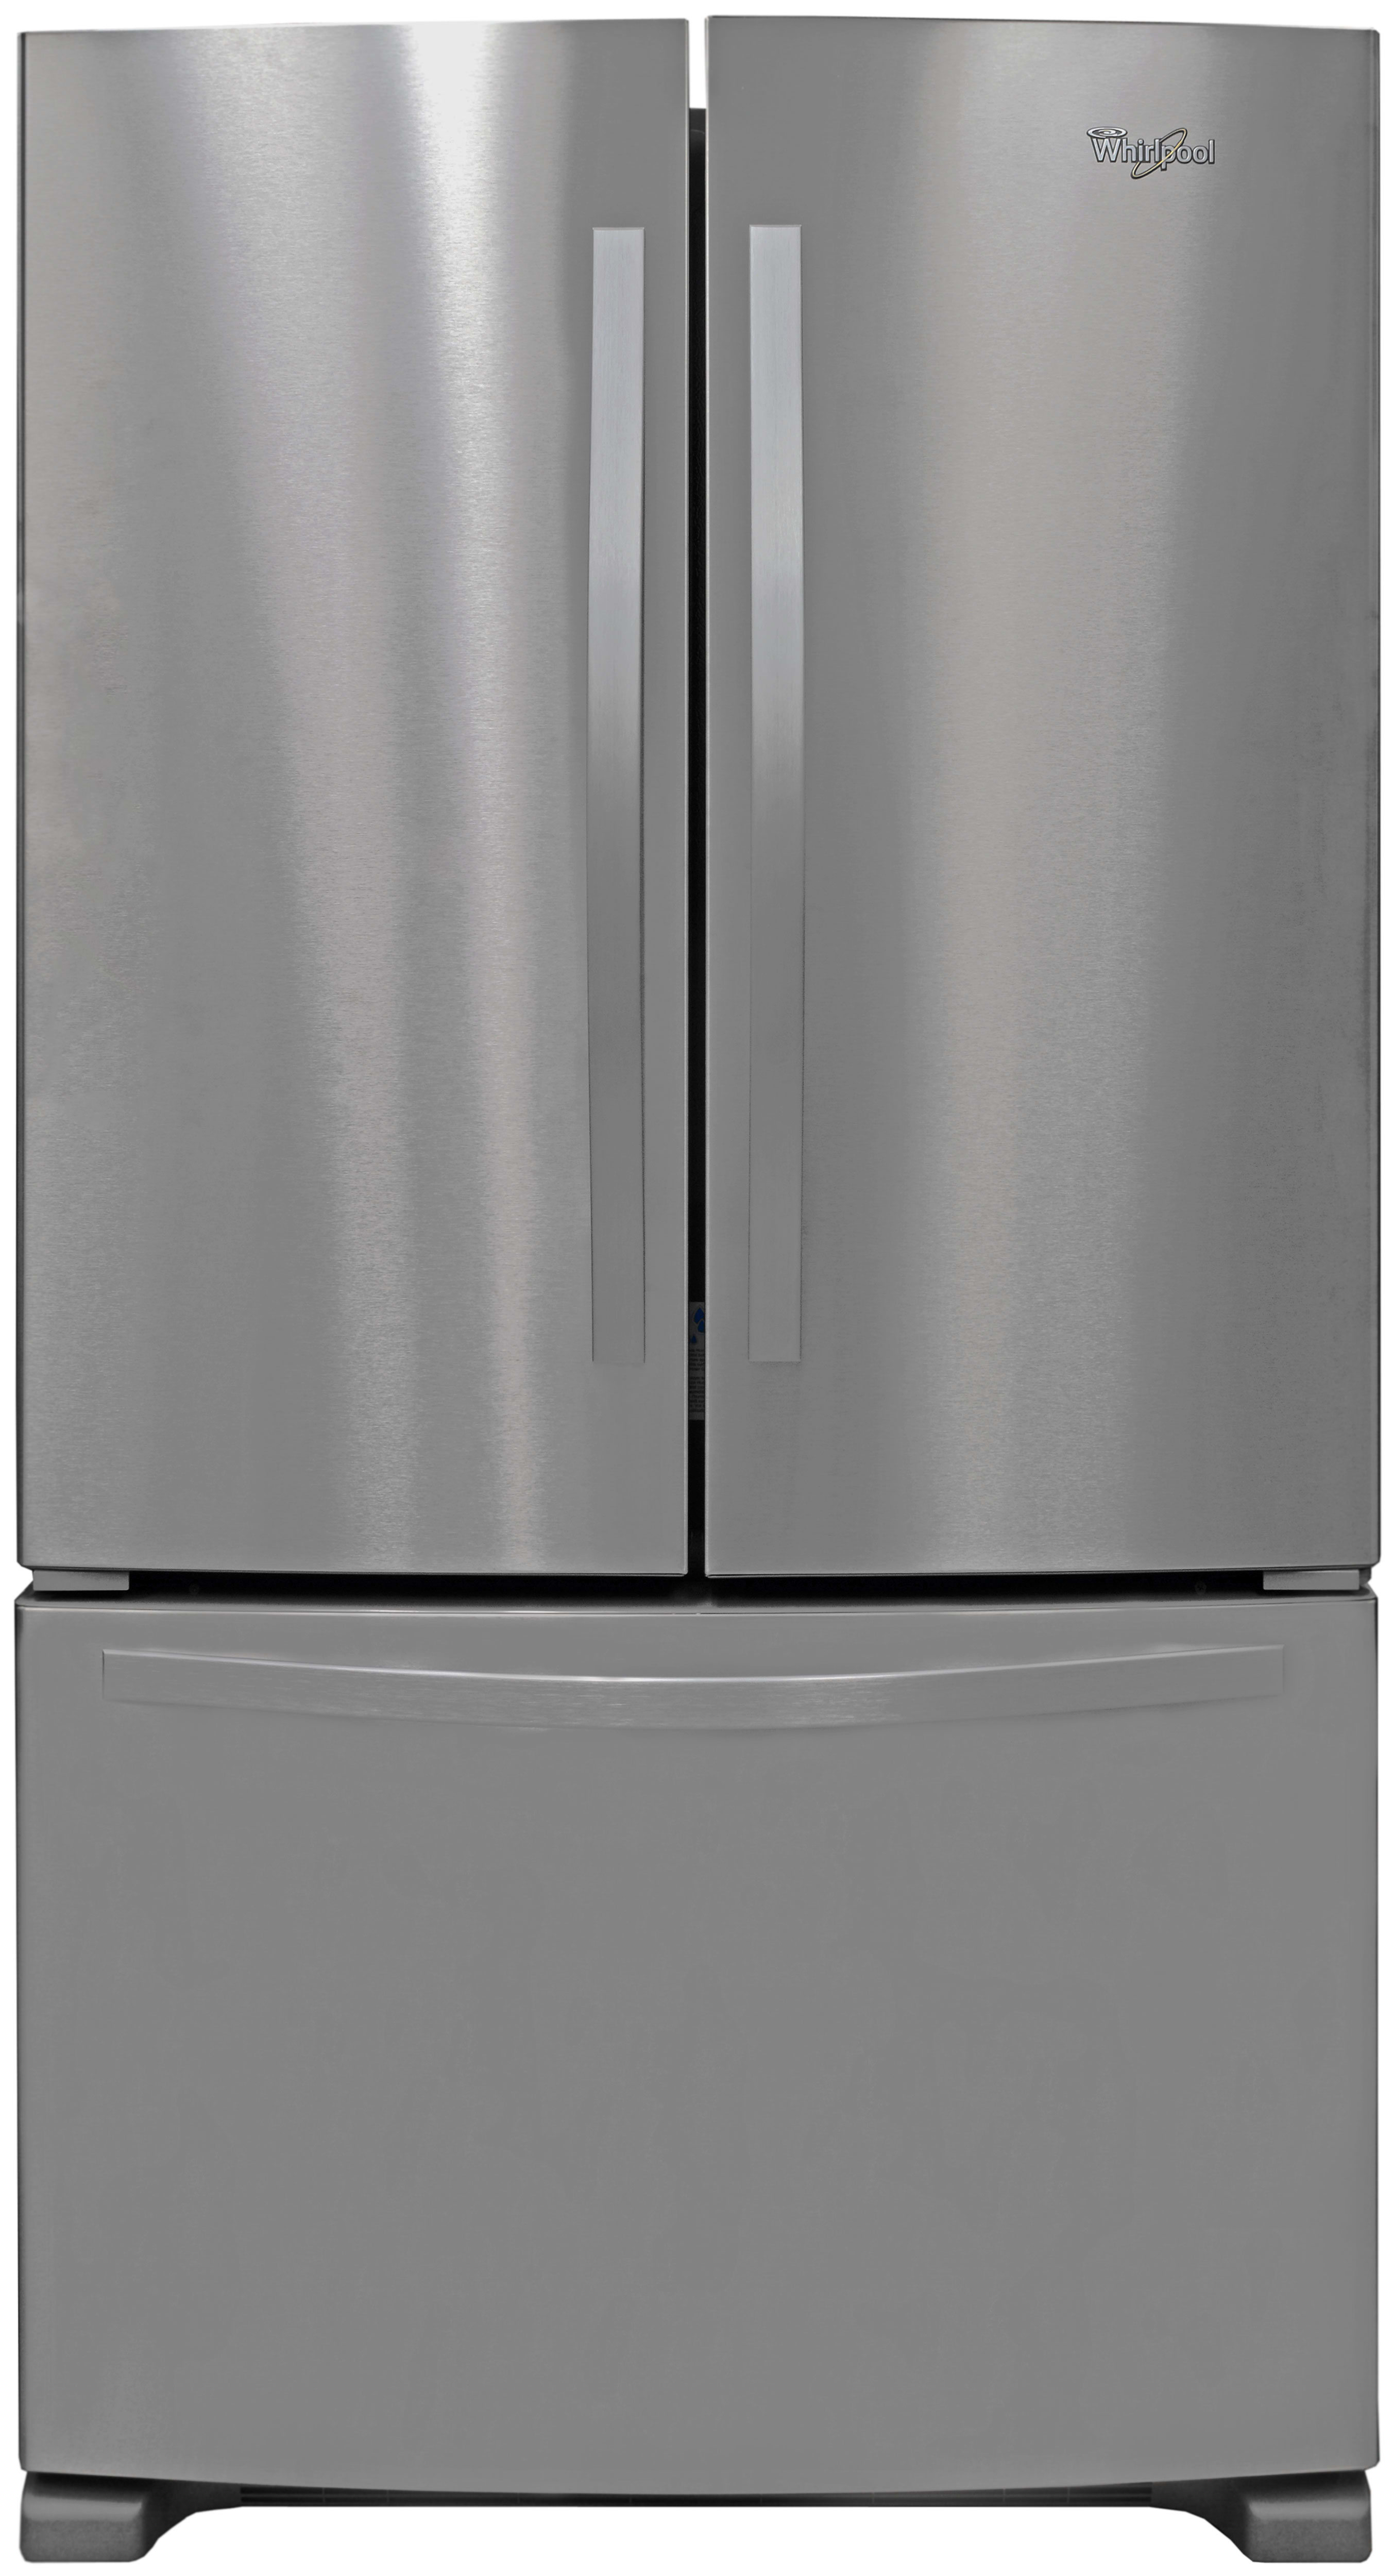 With no dispenser to break it up, the Whirlpool WRF535SMBM's exterior finish is more or less a continuous expanse of stainless steel.